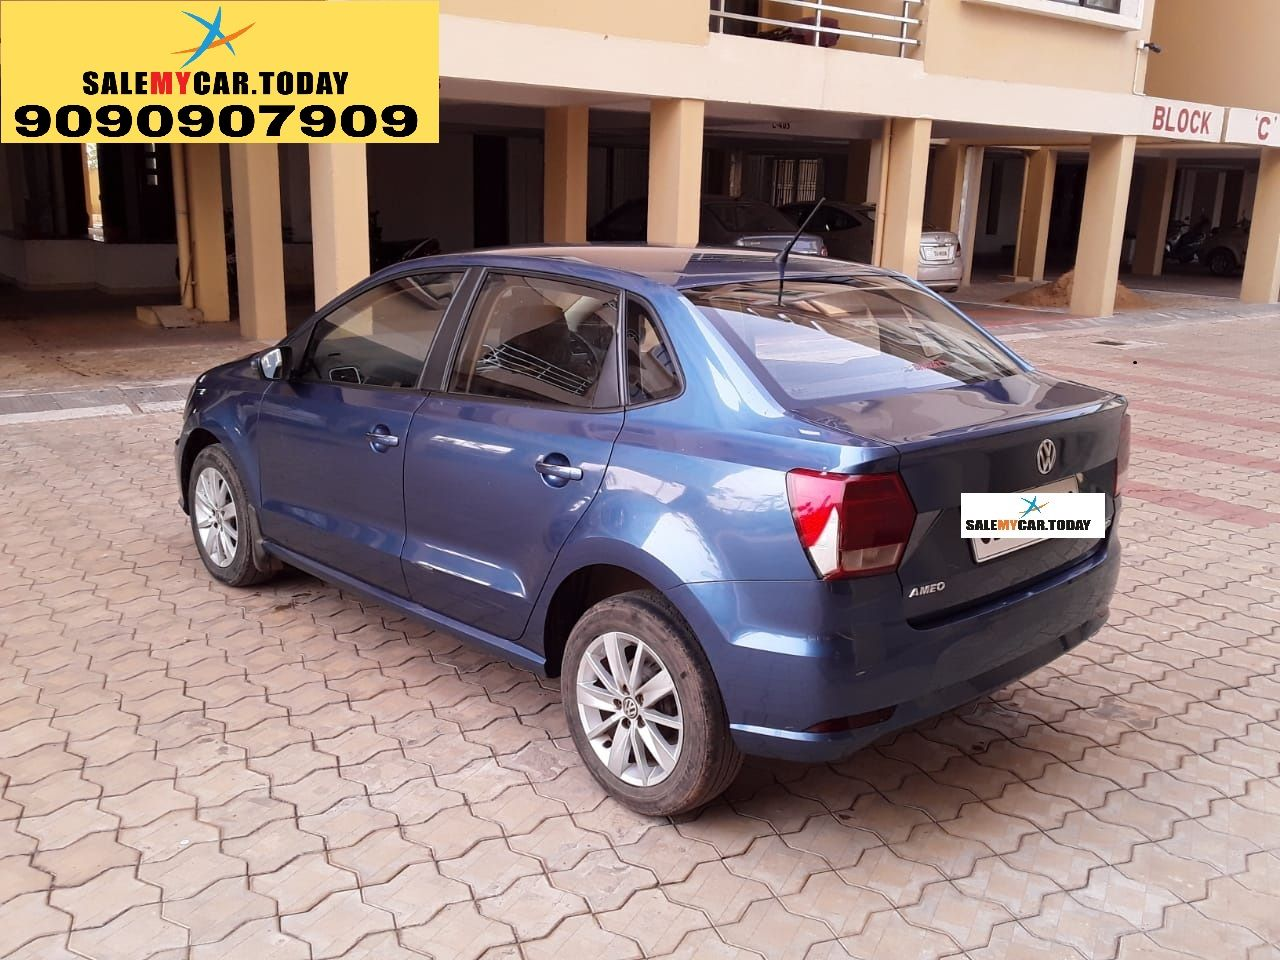 SALEMYCAR.TODAY SecondHand cars for sale in Bhubaneswar